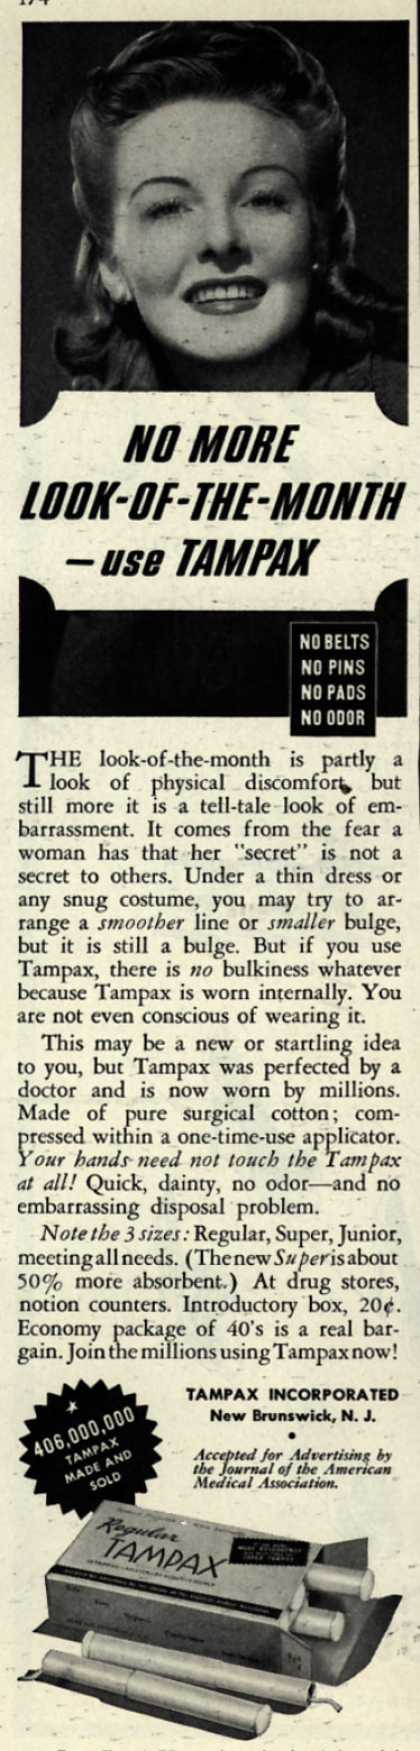 Tampax&#8217;s Tampons &#8211; No More Look-Of-The-Month-use TAMPAX (1942)